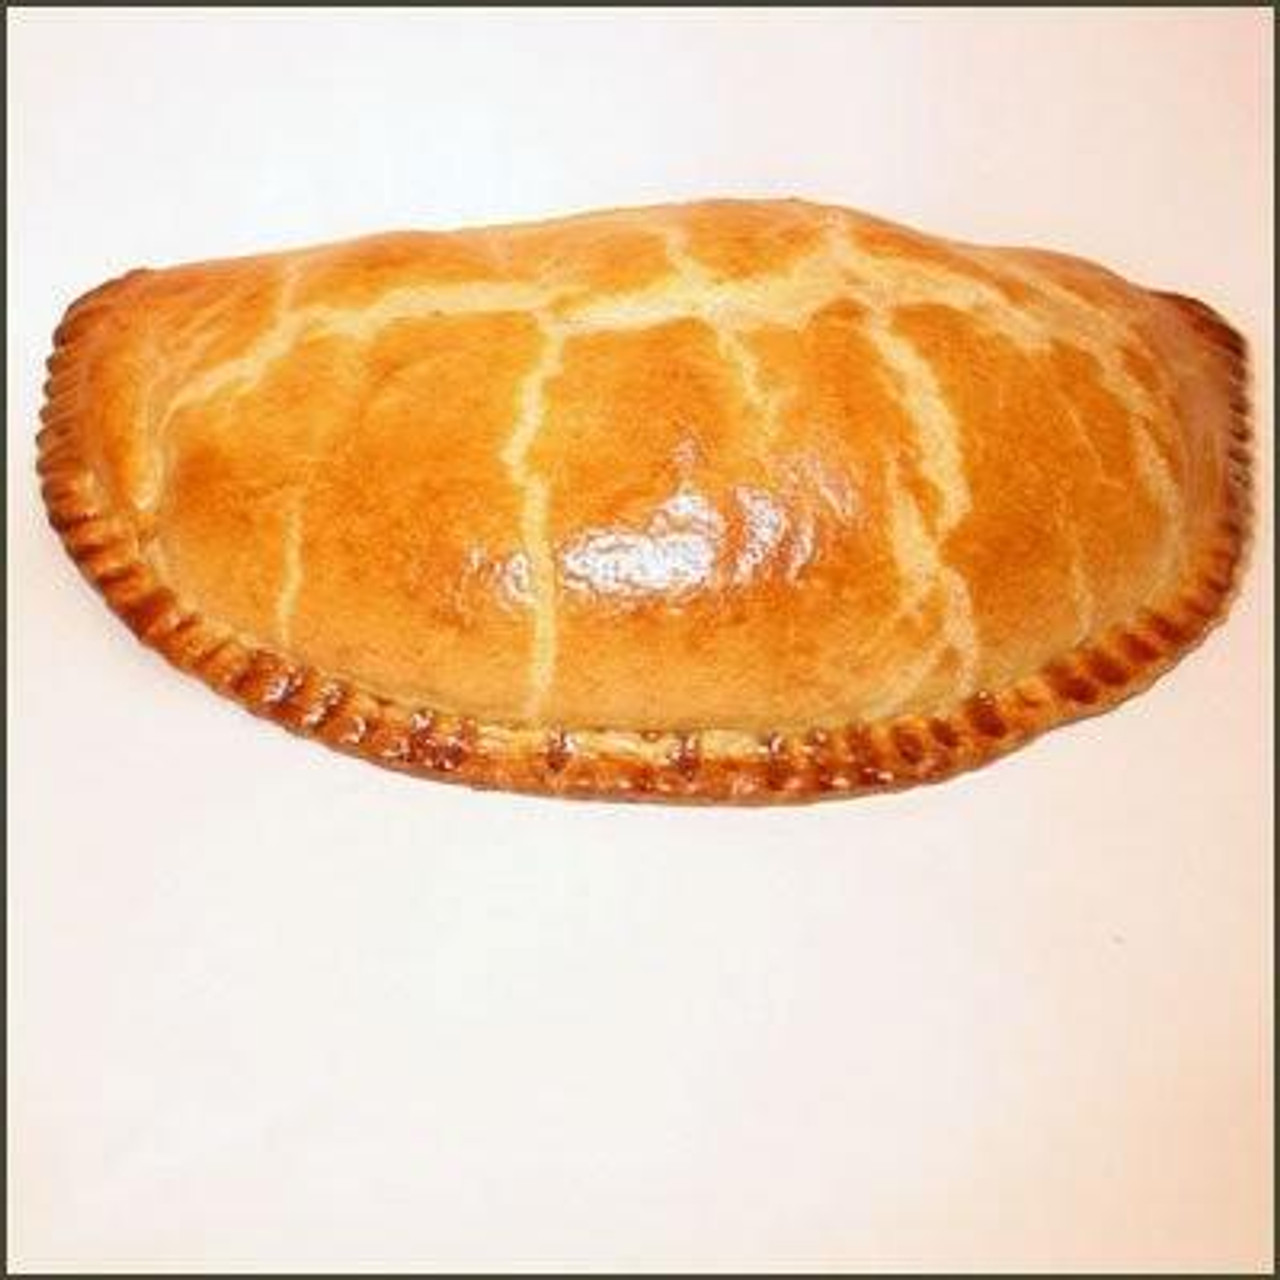 4&20 Pasty Co - Curry Beef Pasty, 7oz